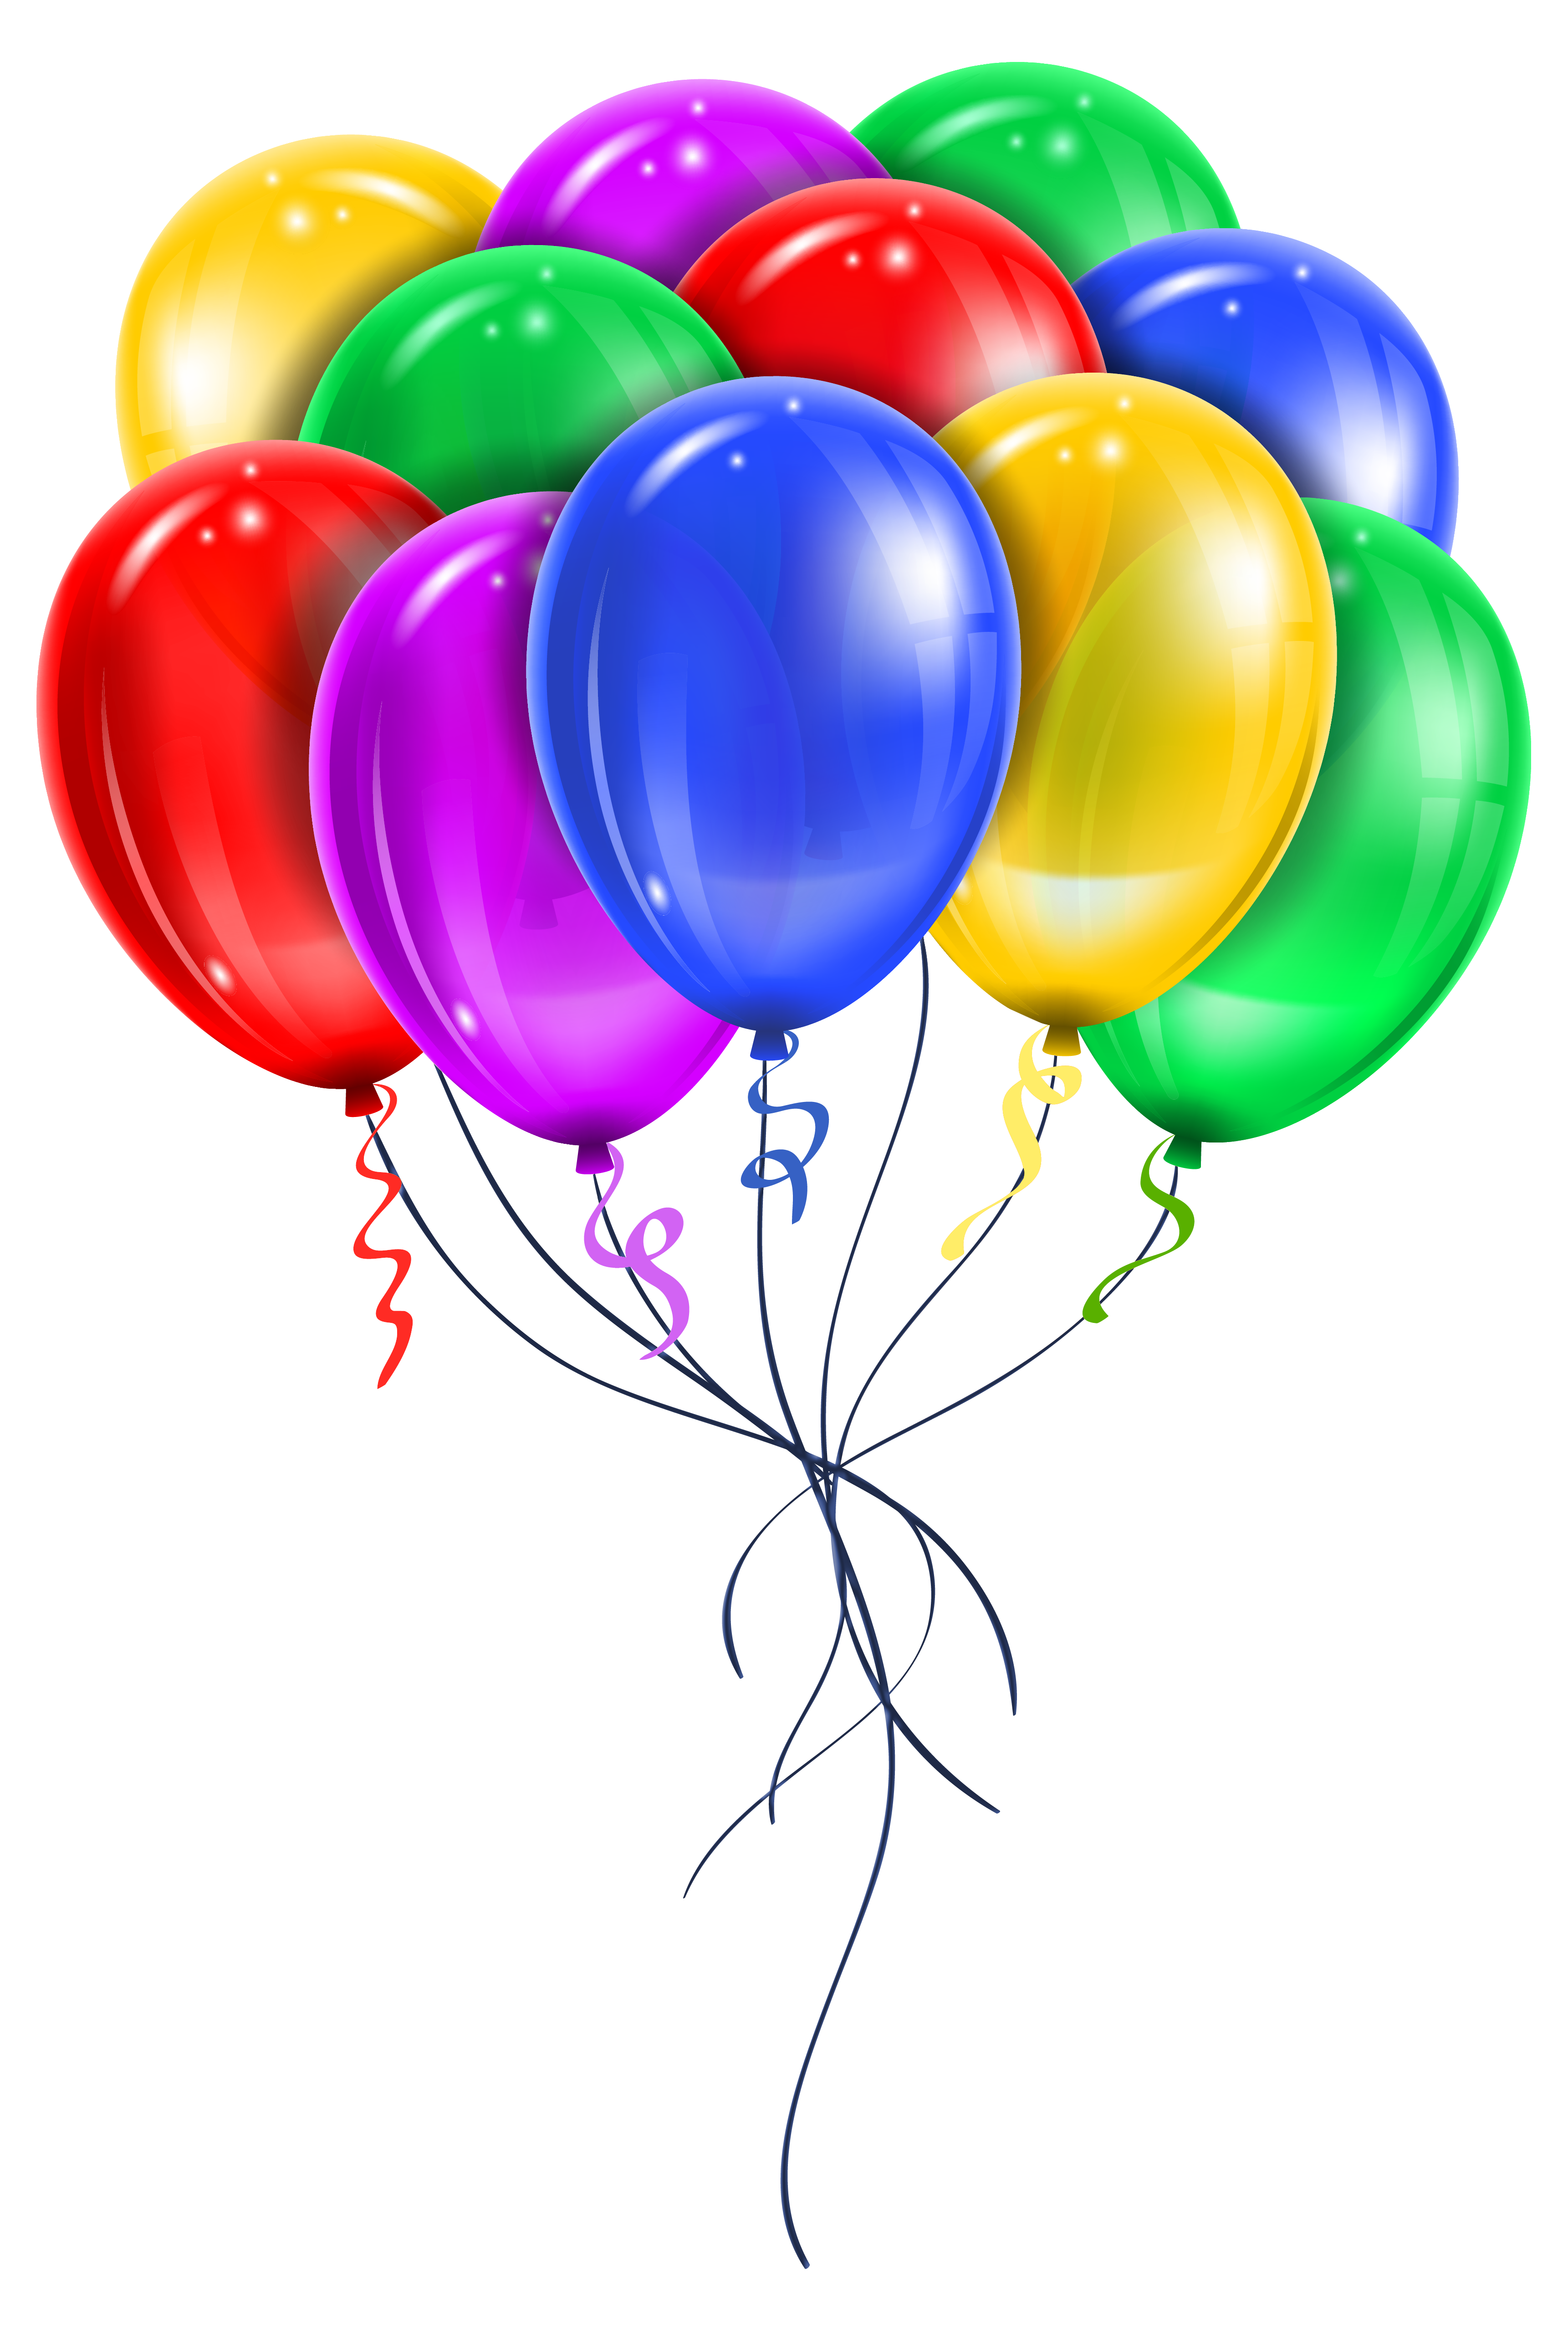 Free Balloons, Download Free Clip Art, Free Clip Art on.